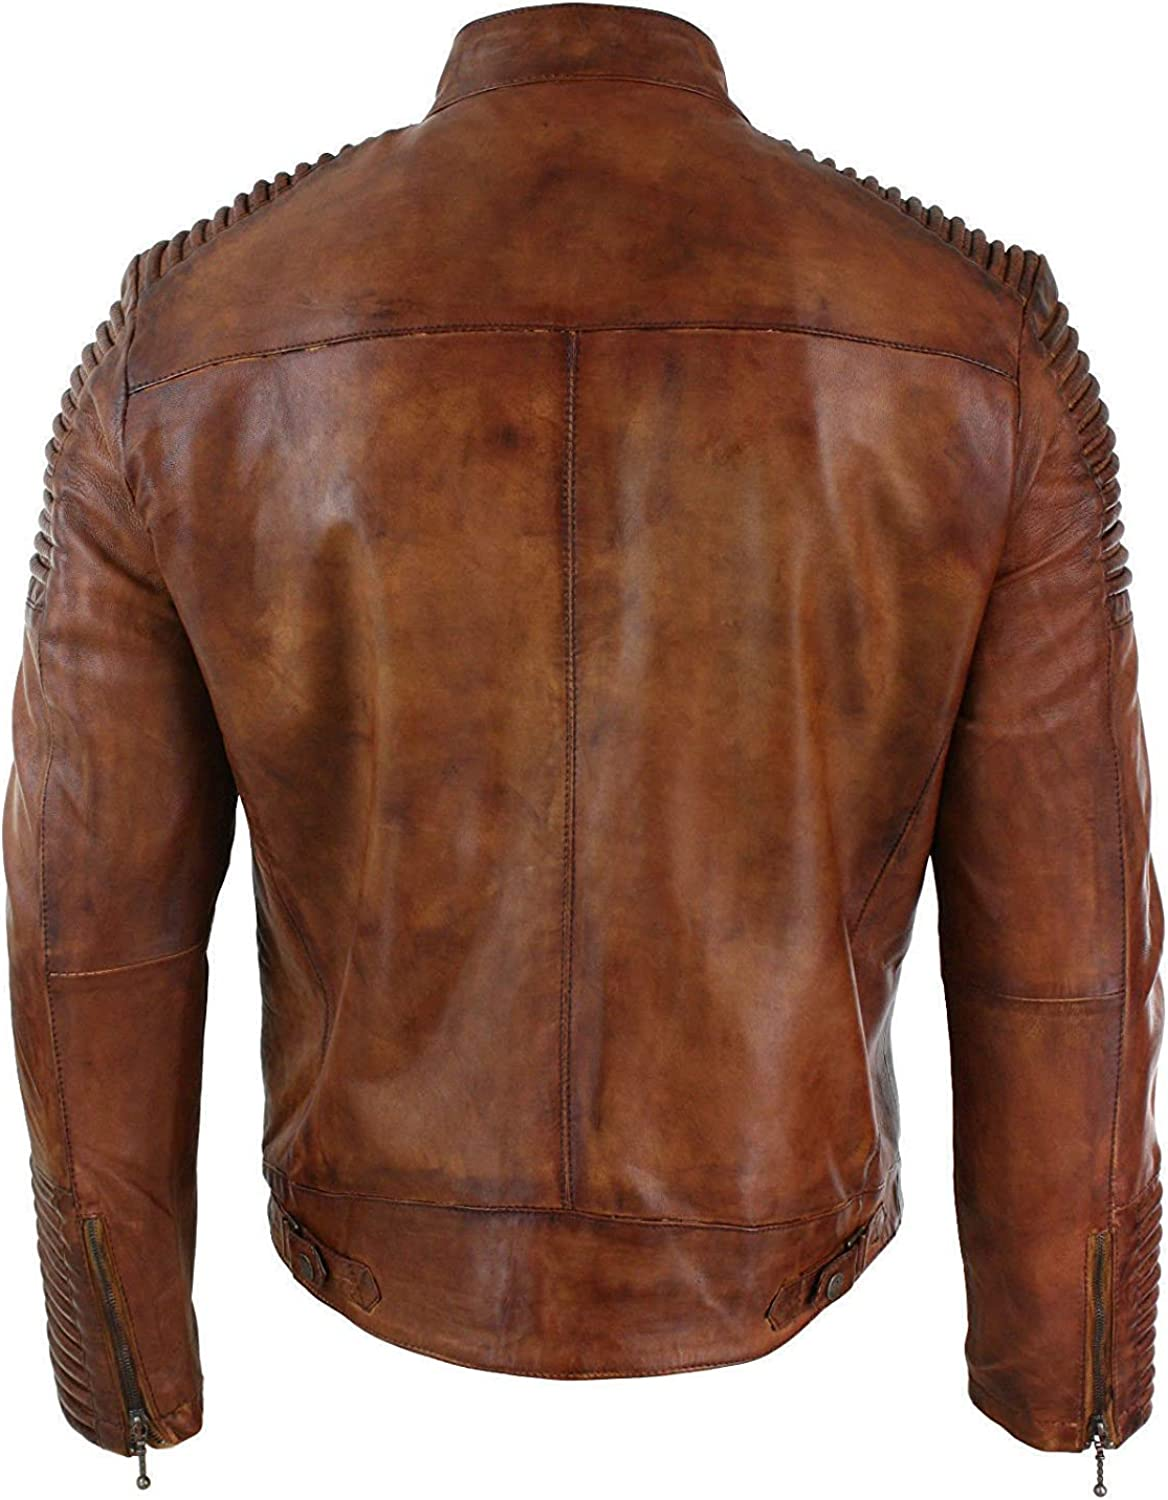 Men/'s Camel/'s Brown Heavy Quilted Vintage Cafe Racer Motorcycle Real Leather Jacket